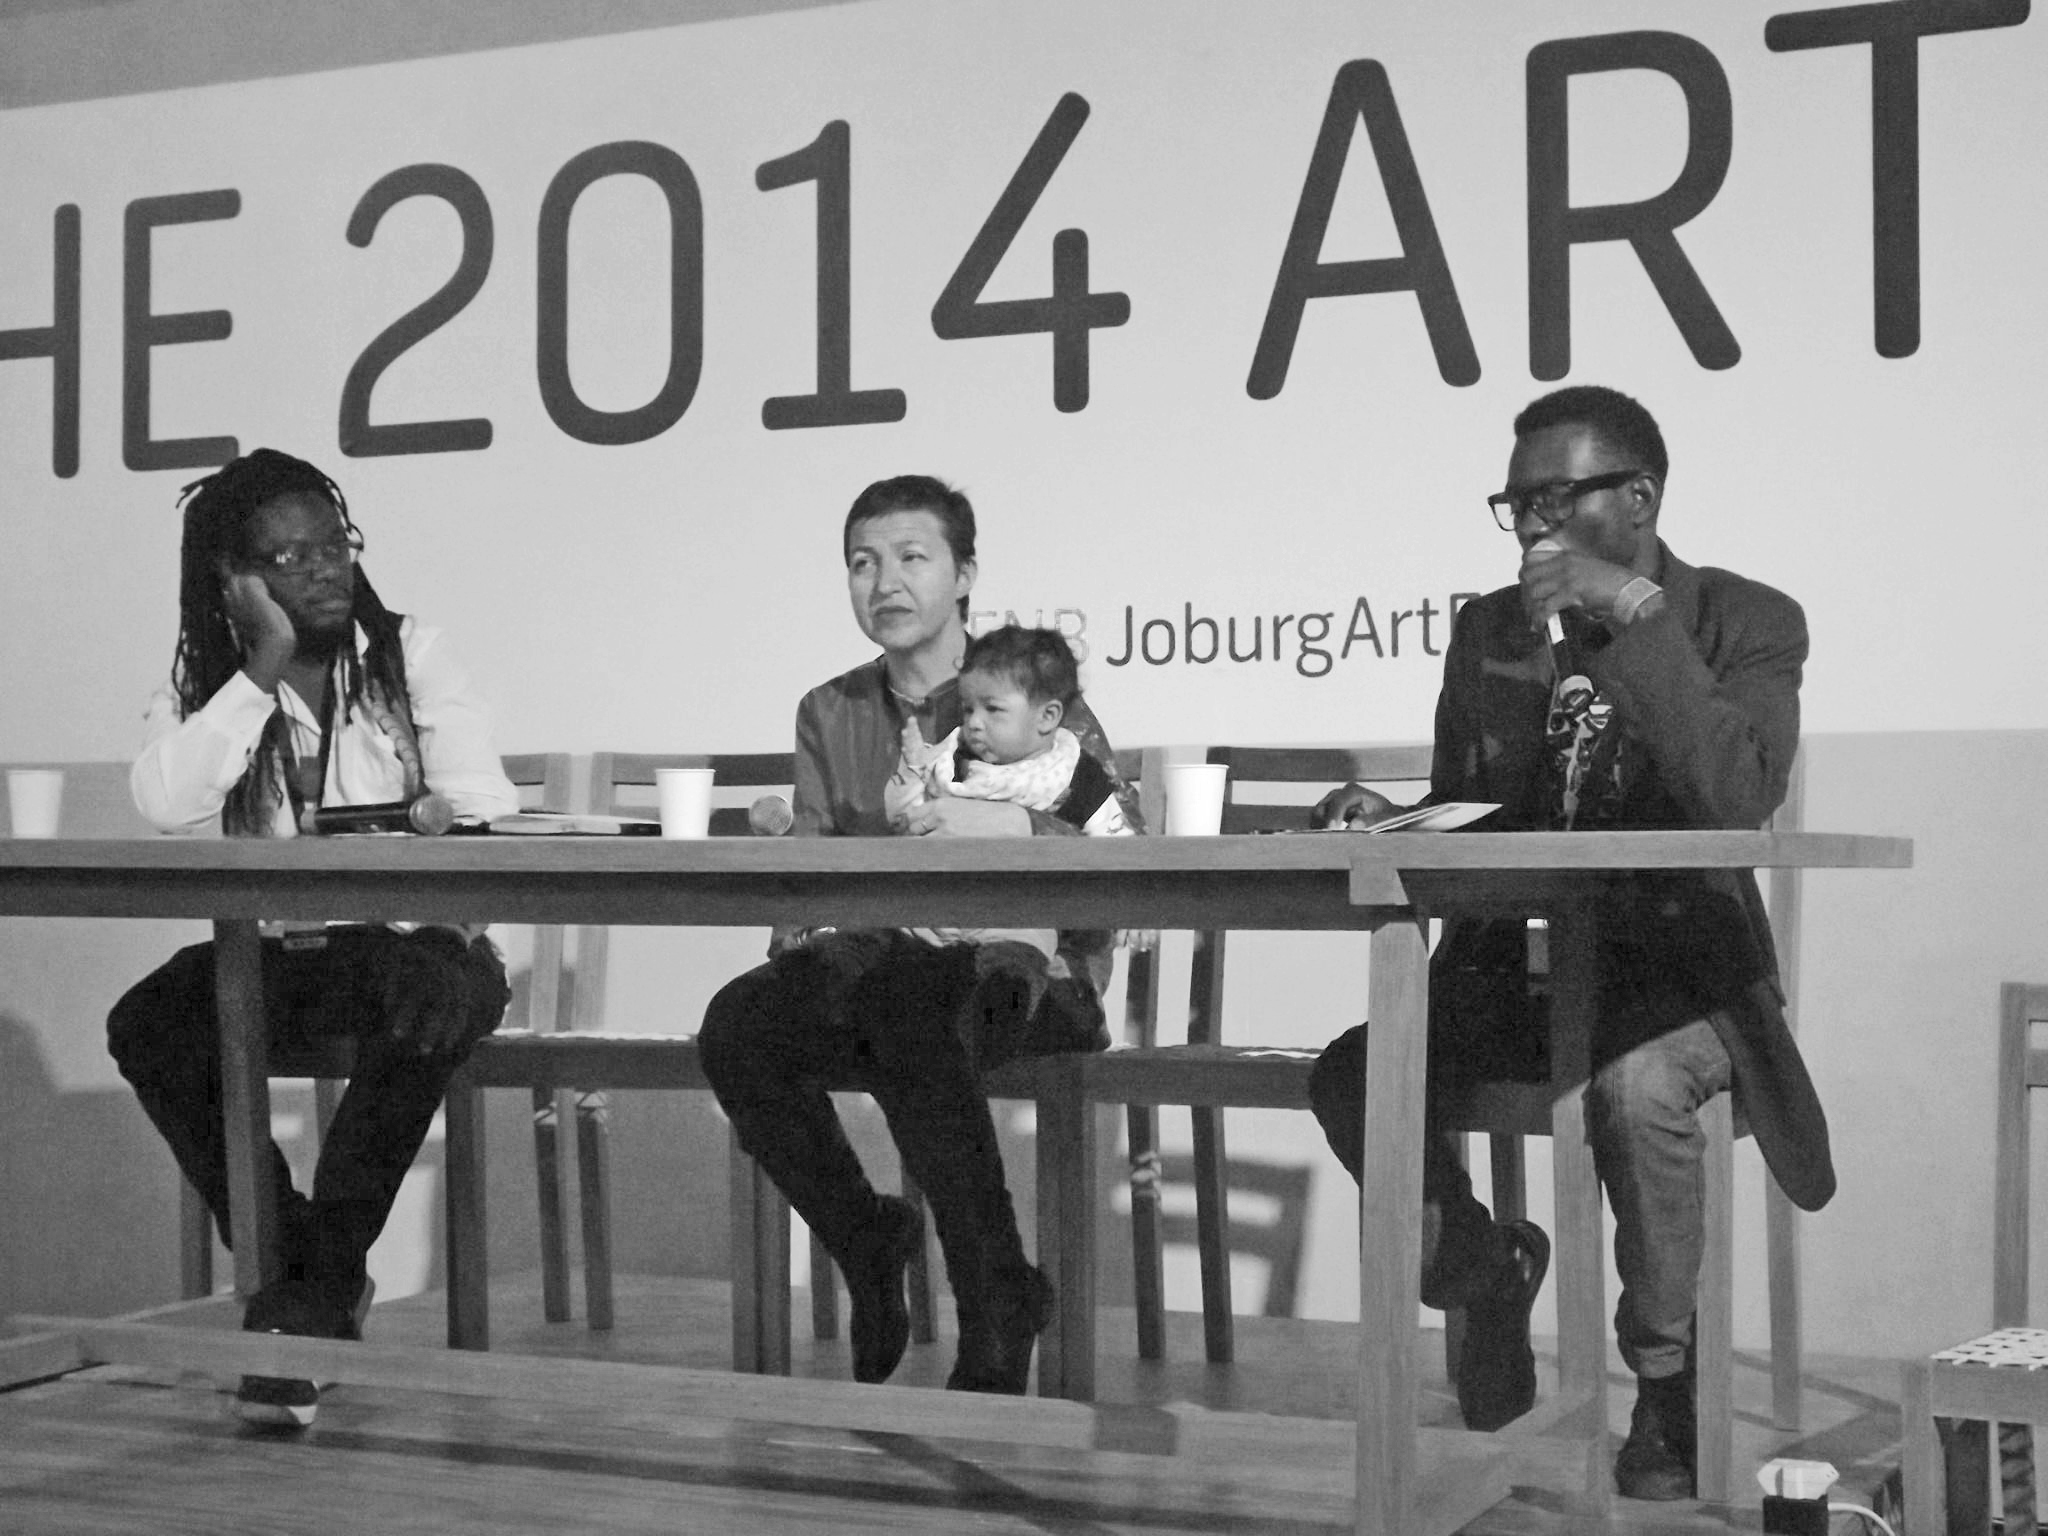 Marcus Gora and Valerie Kabov (founders of First Floor Gallery), and artist Moffat Takadiwa at FNB Joburg Art Fair, 2014 presenting New Models for Art Organisations in Africa-First Floor Gallery Harare: A Case Study.